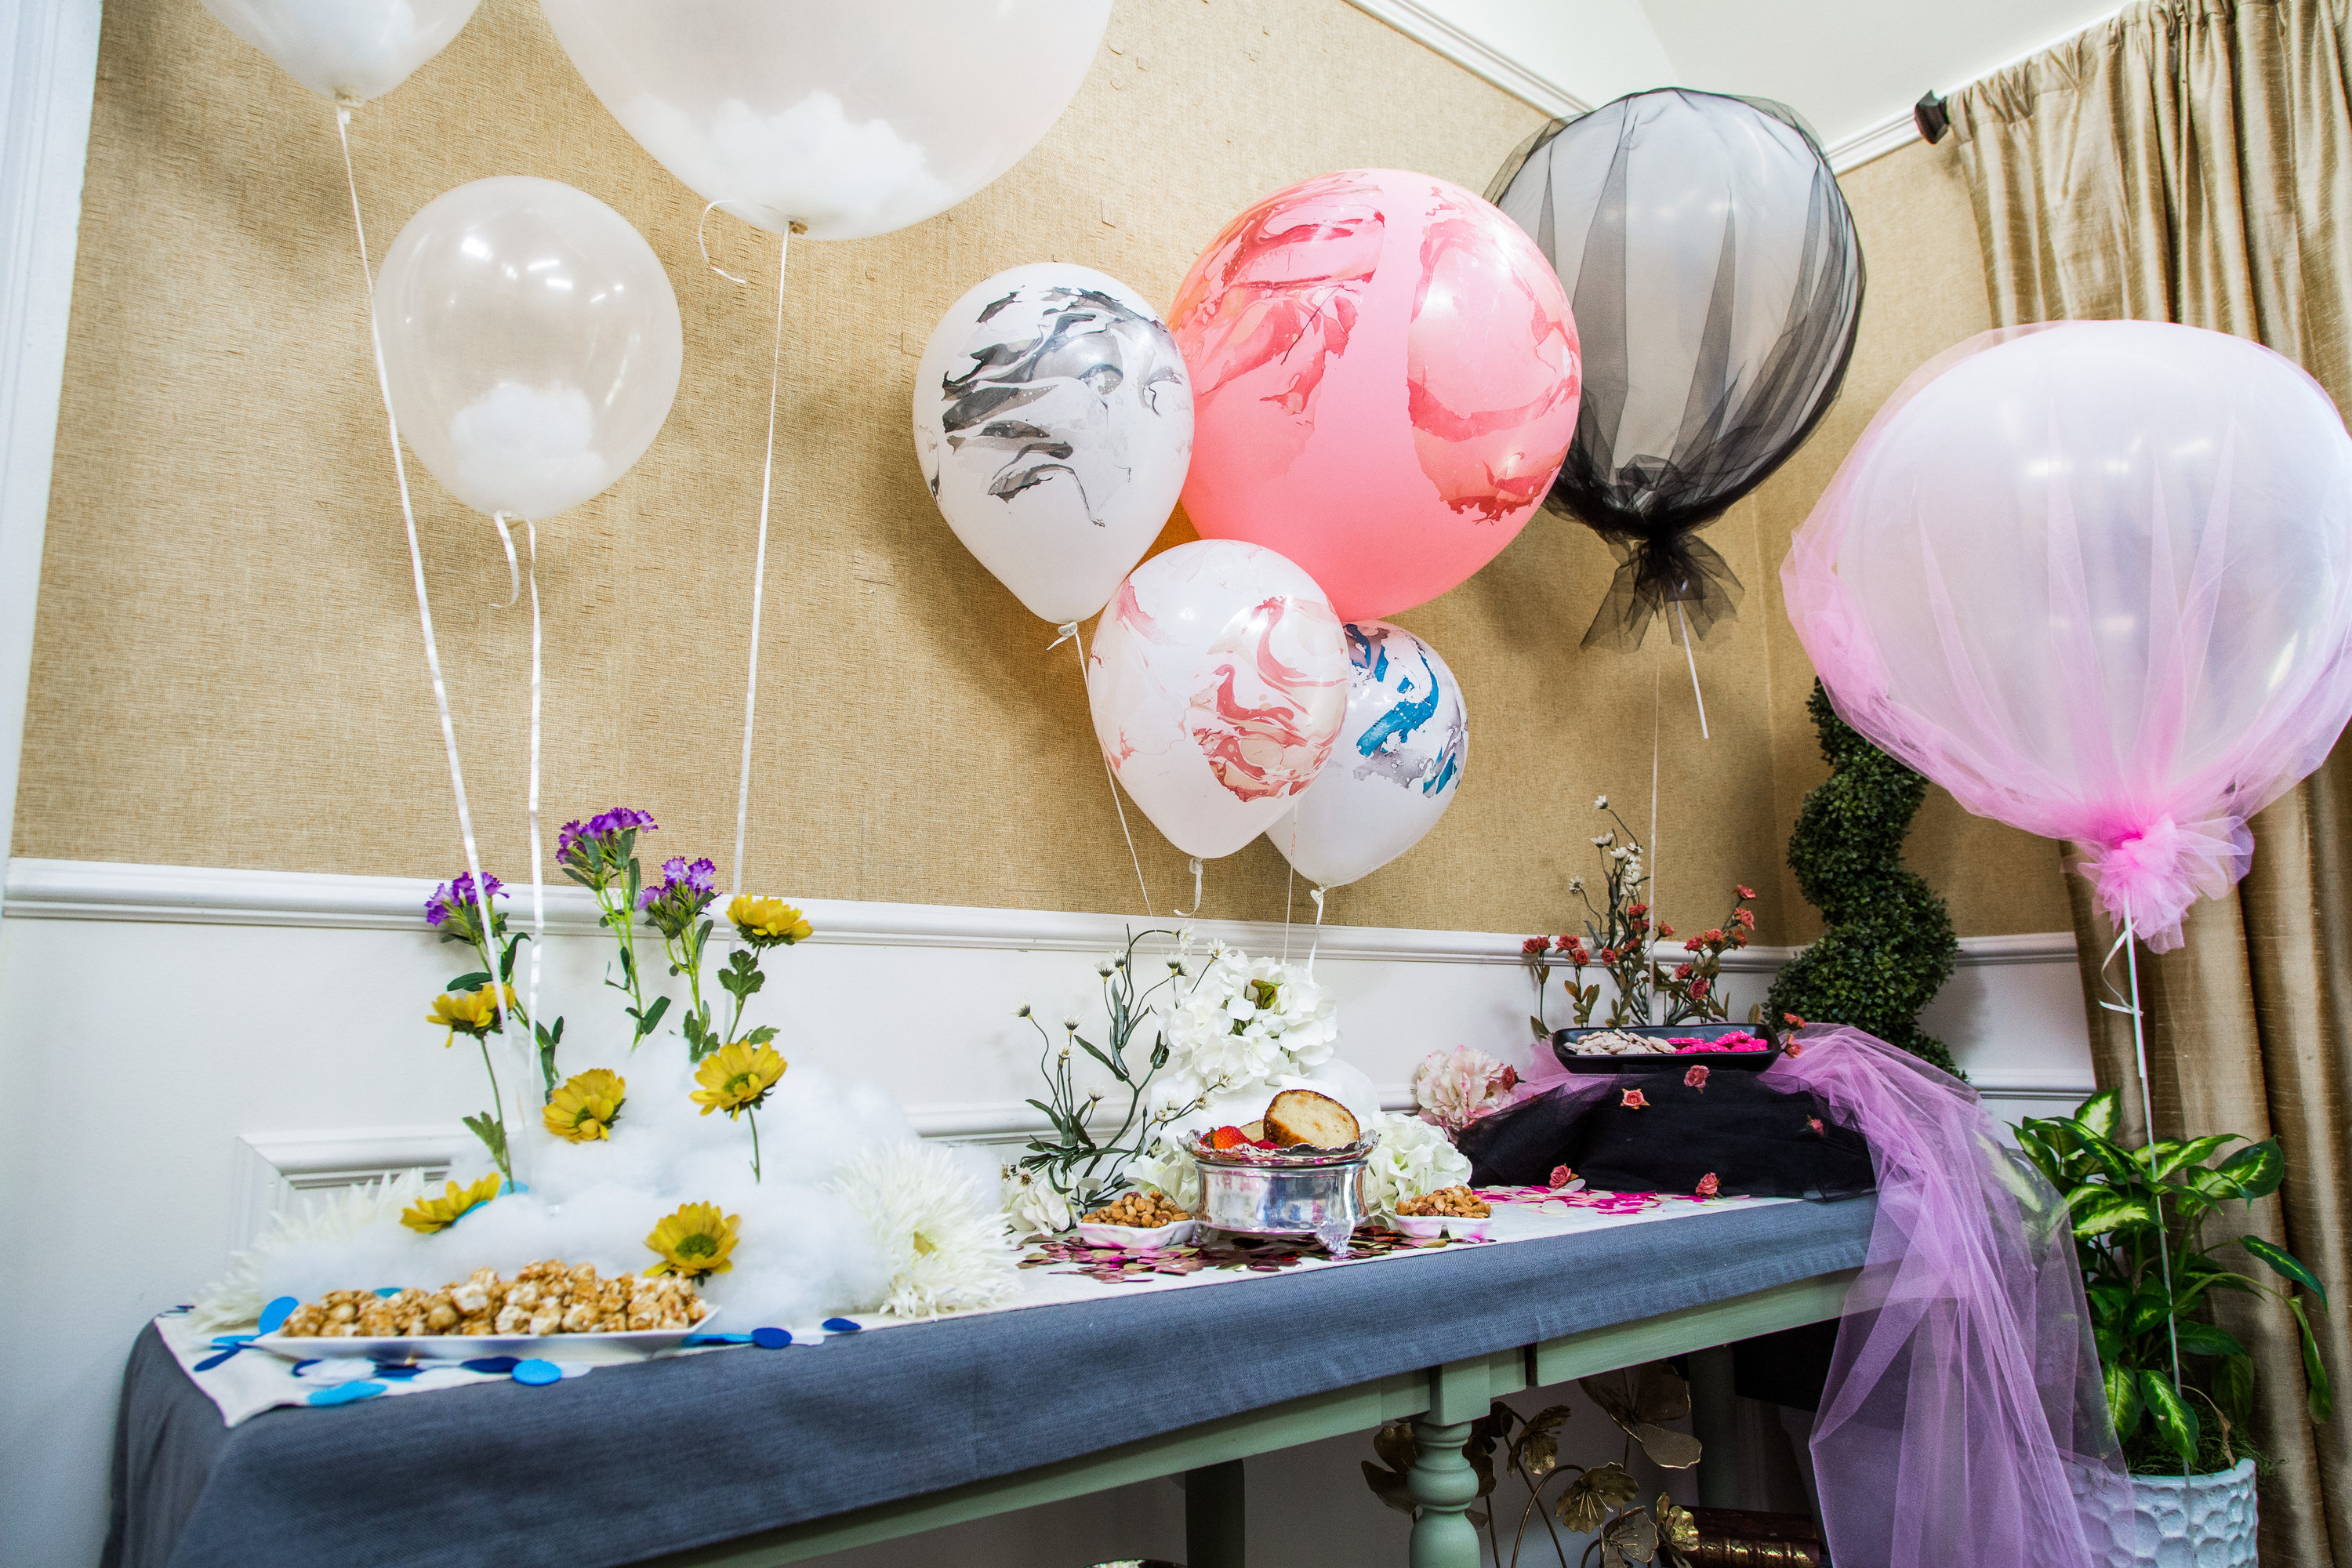 Diy Party How To Diy Party Balloons Hallmark Channel